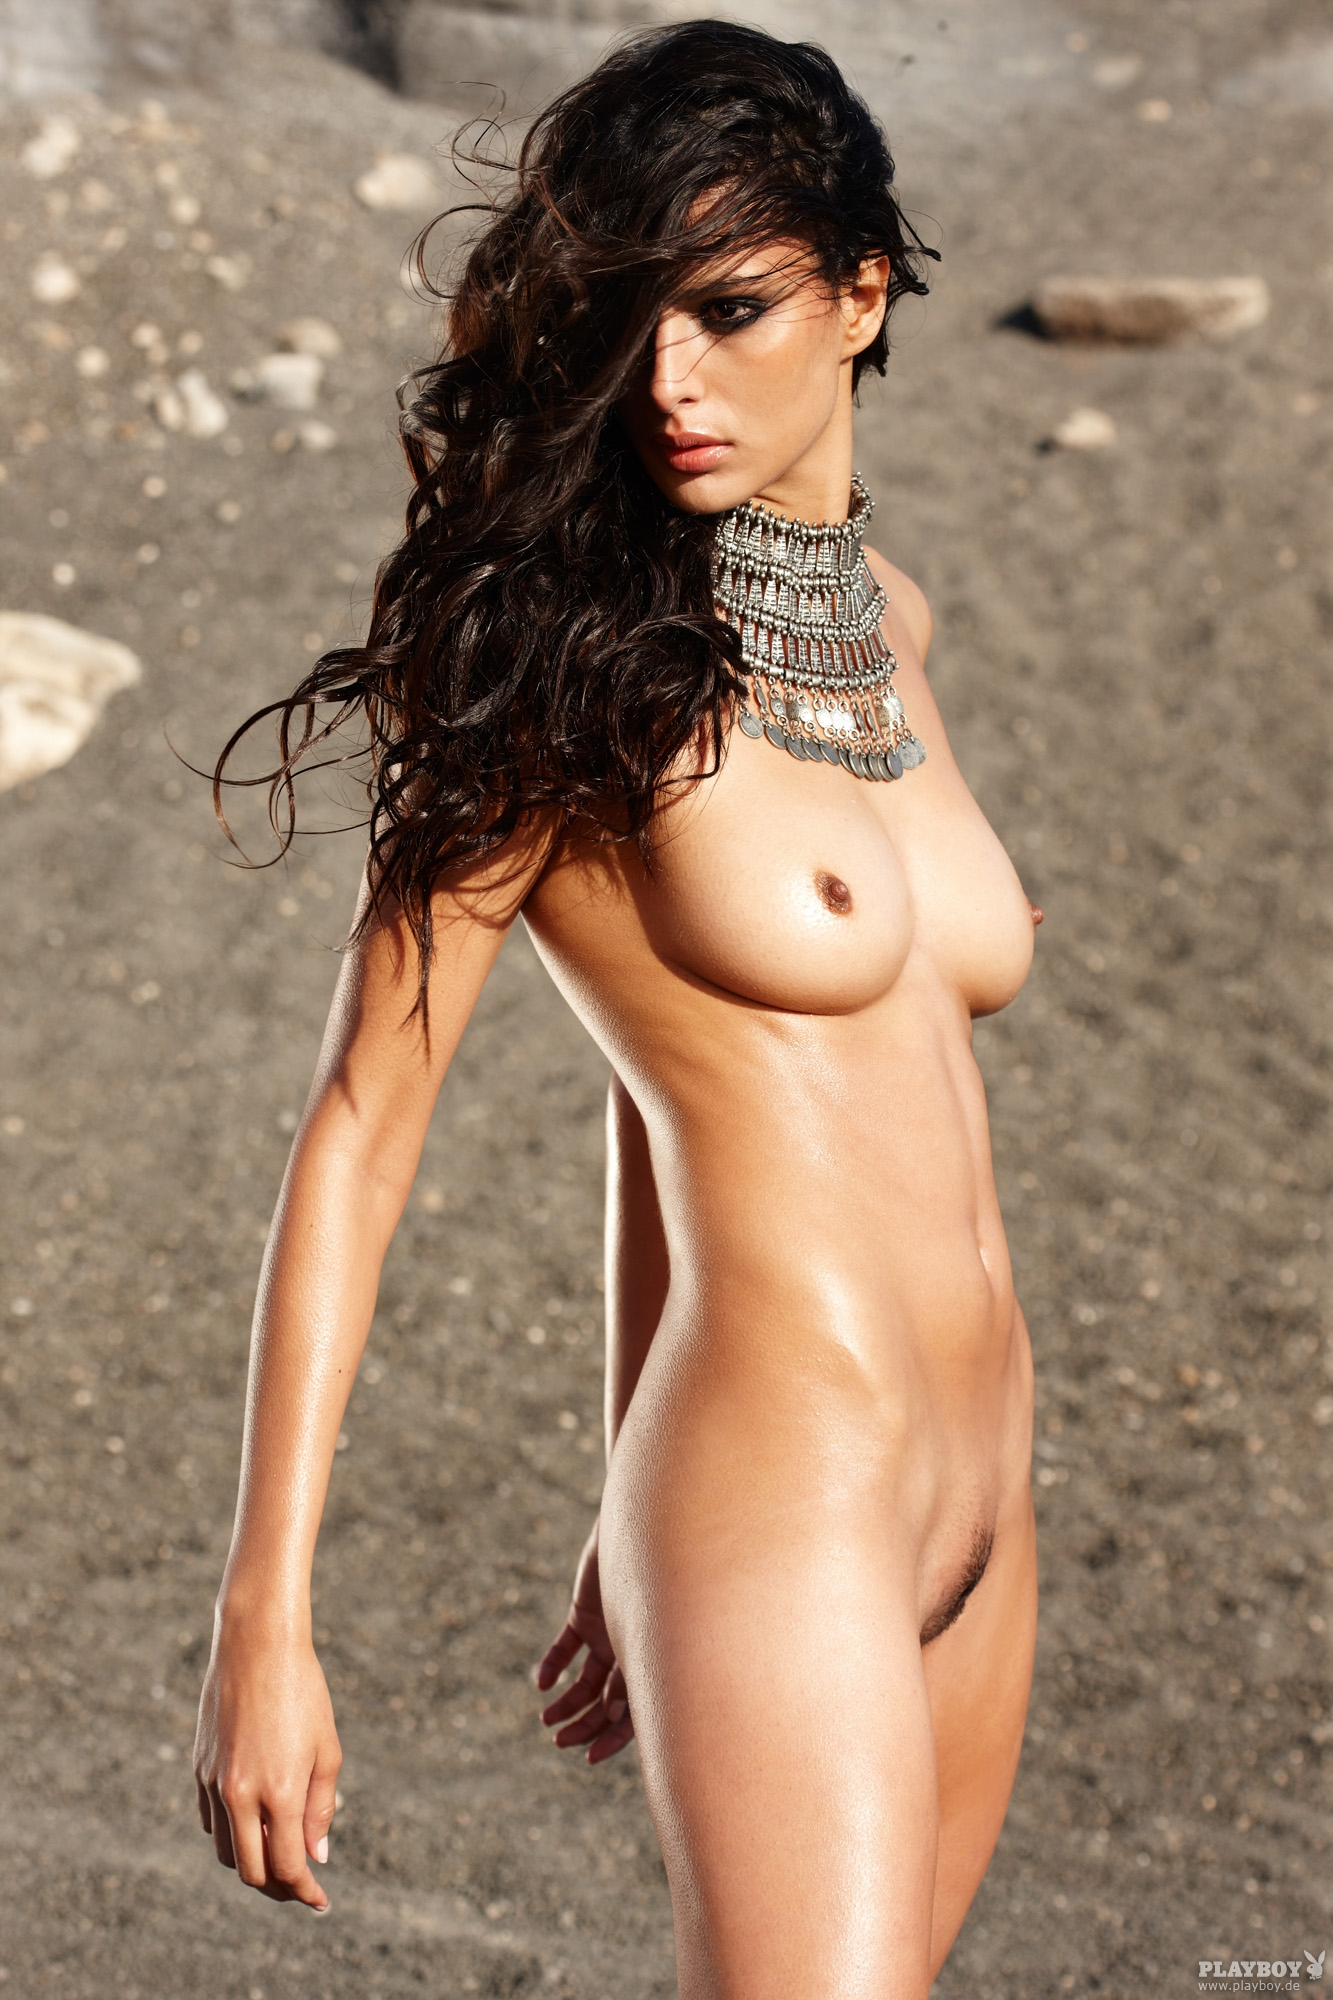 31656_GabrielaMilagre_PlayboyGermany_August20122_123_485lo